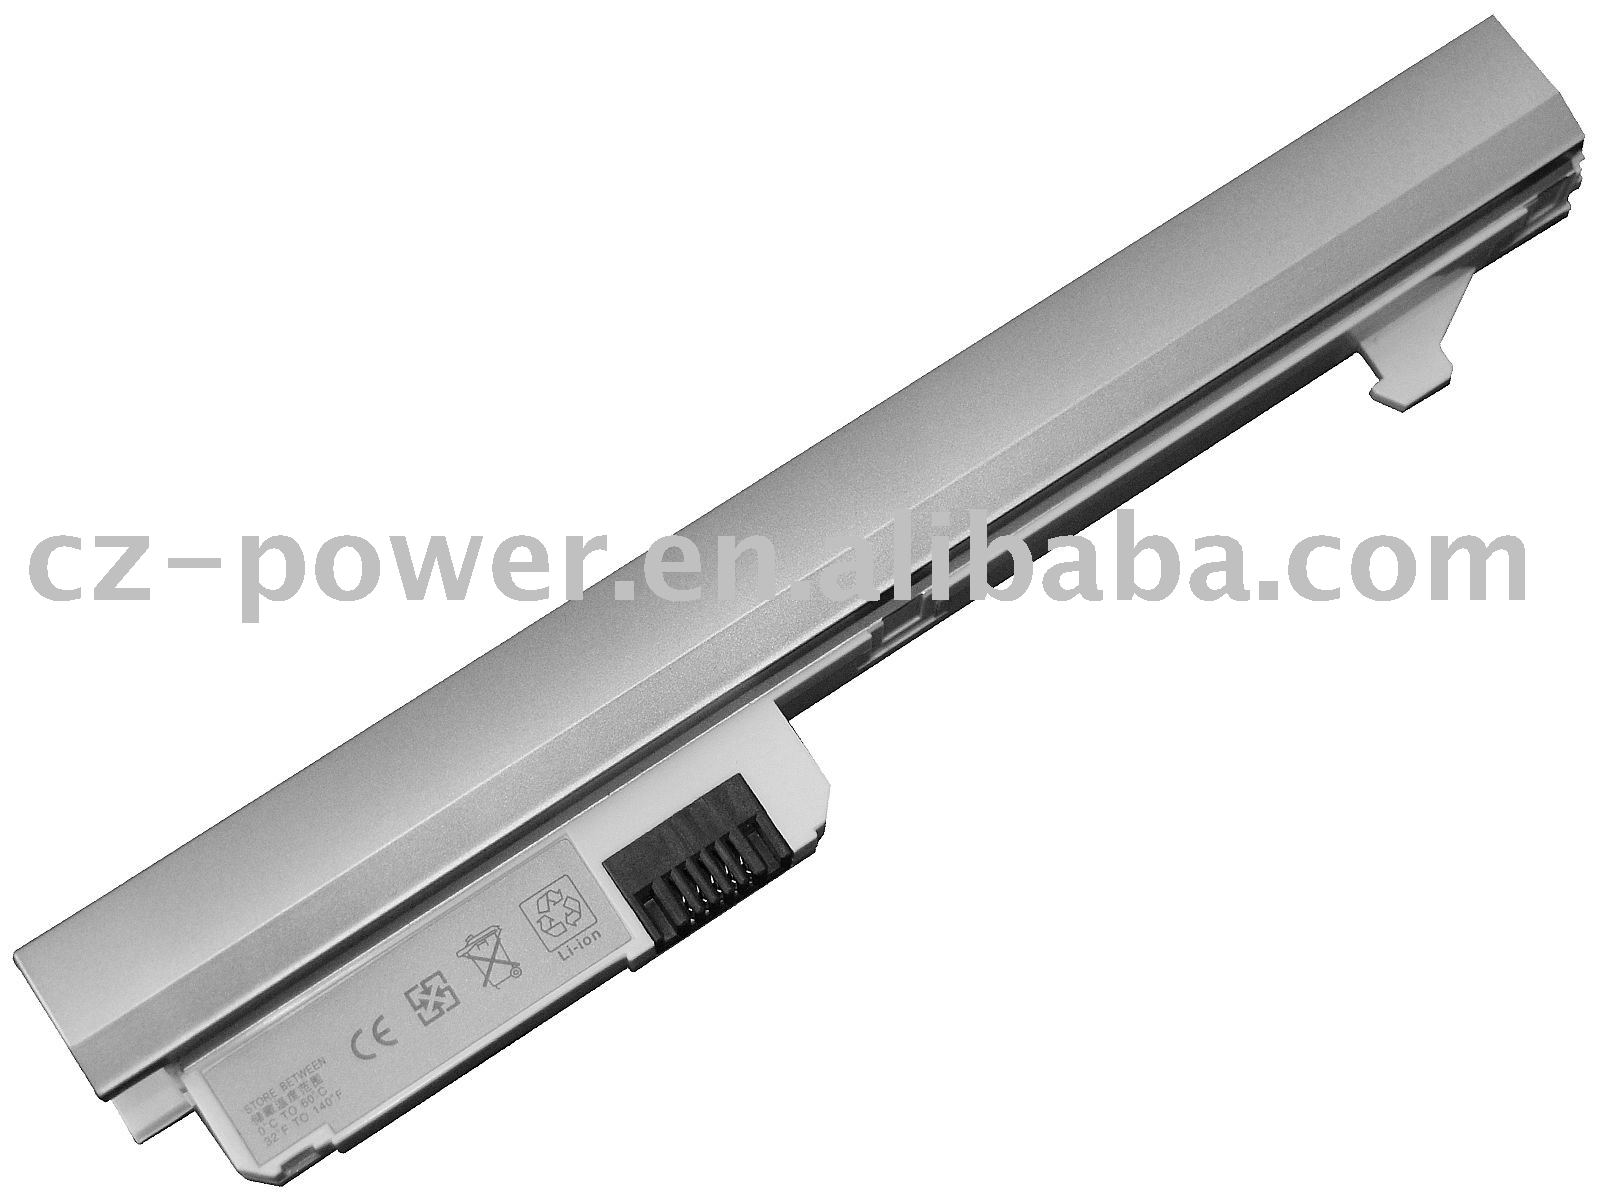 Replacement laptop battery for HP 2133 Mini 2140 Compaq Mini 700